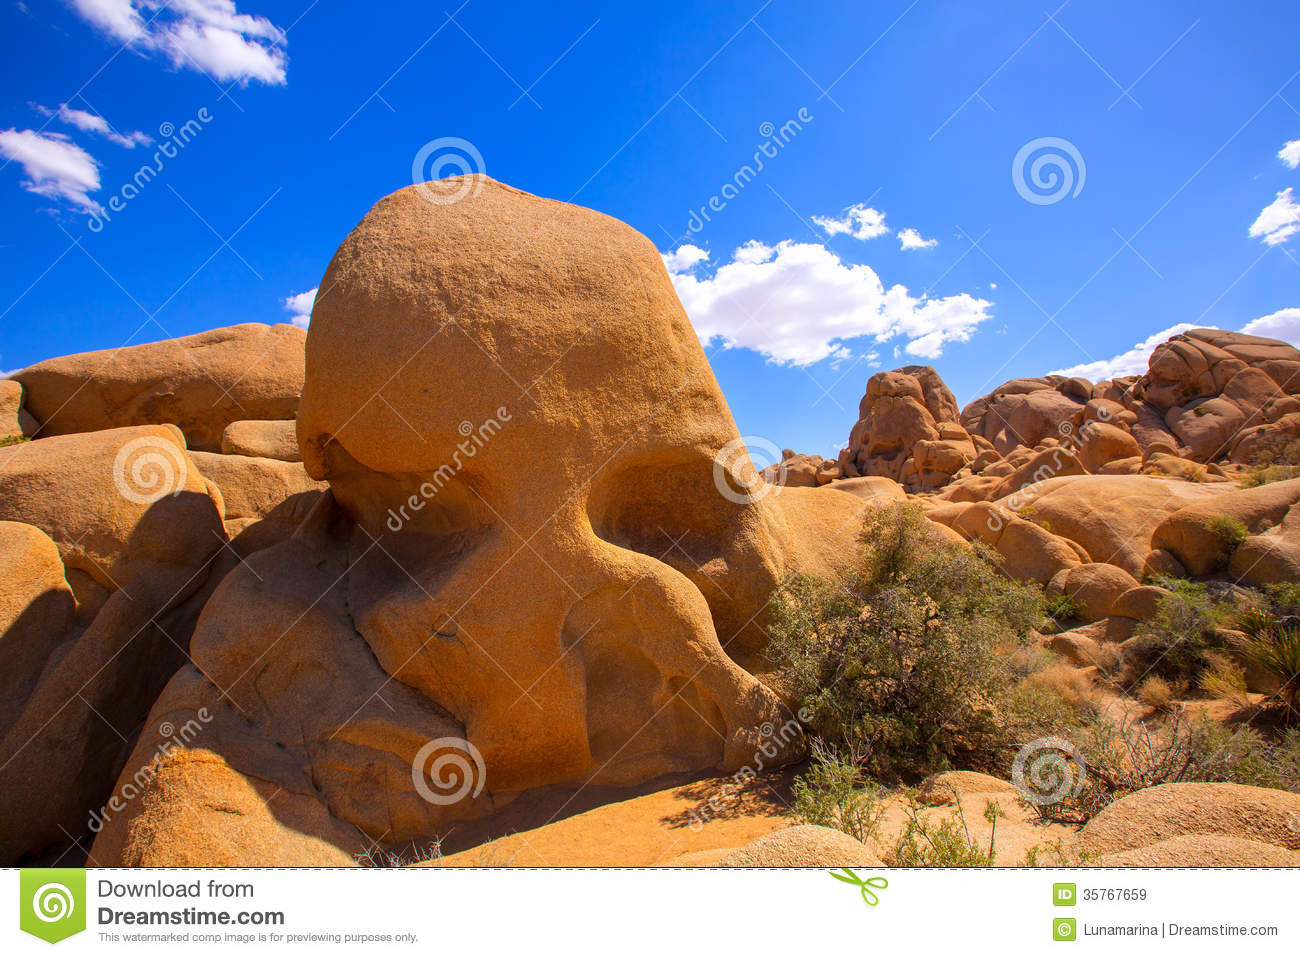 Joshua Tree National Park clipart #5, Download drawings